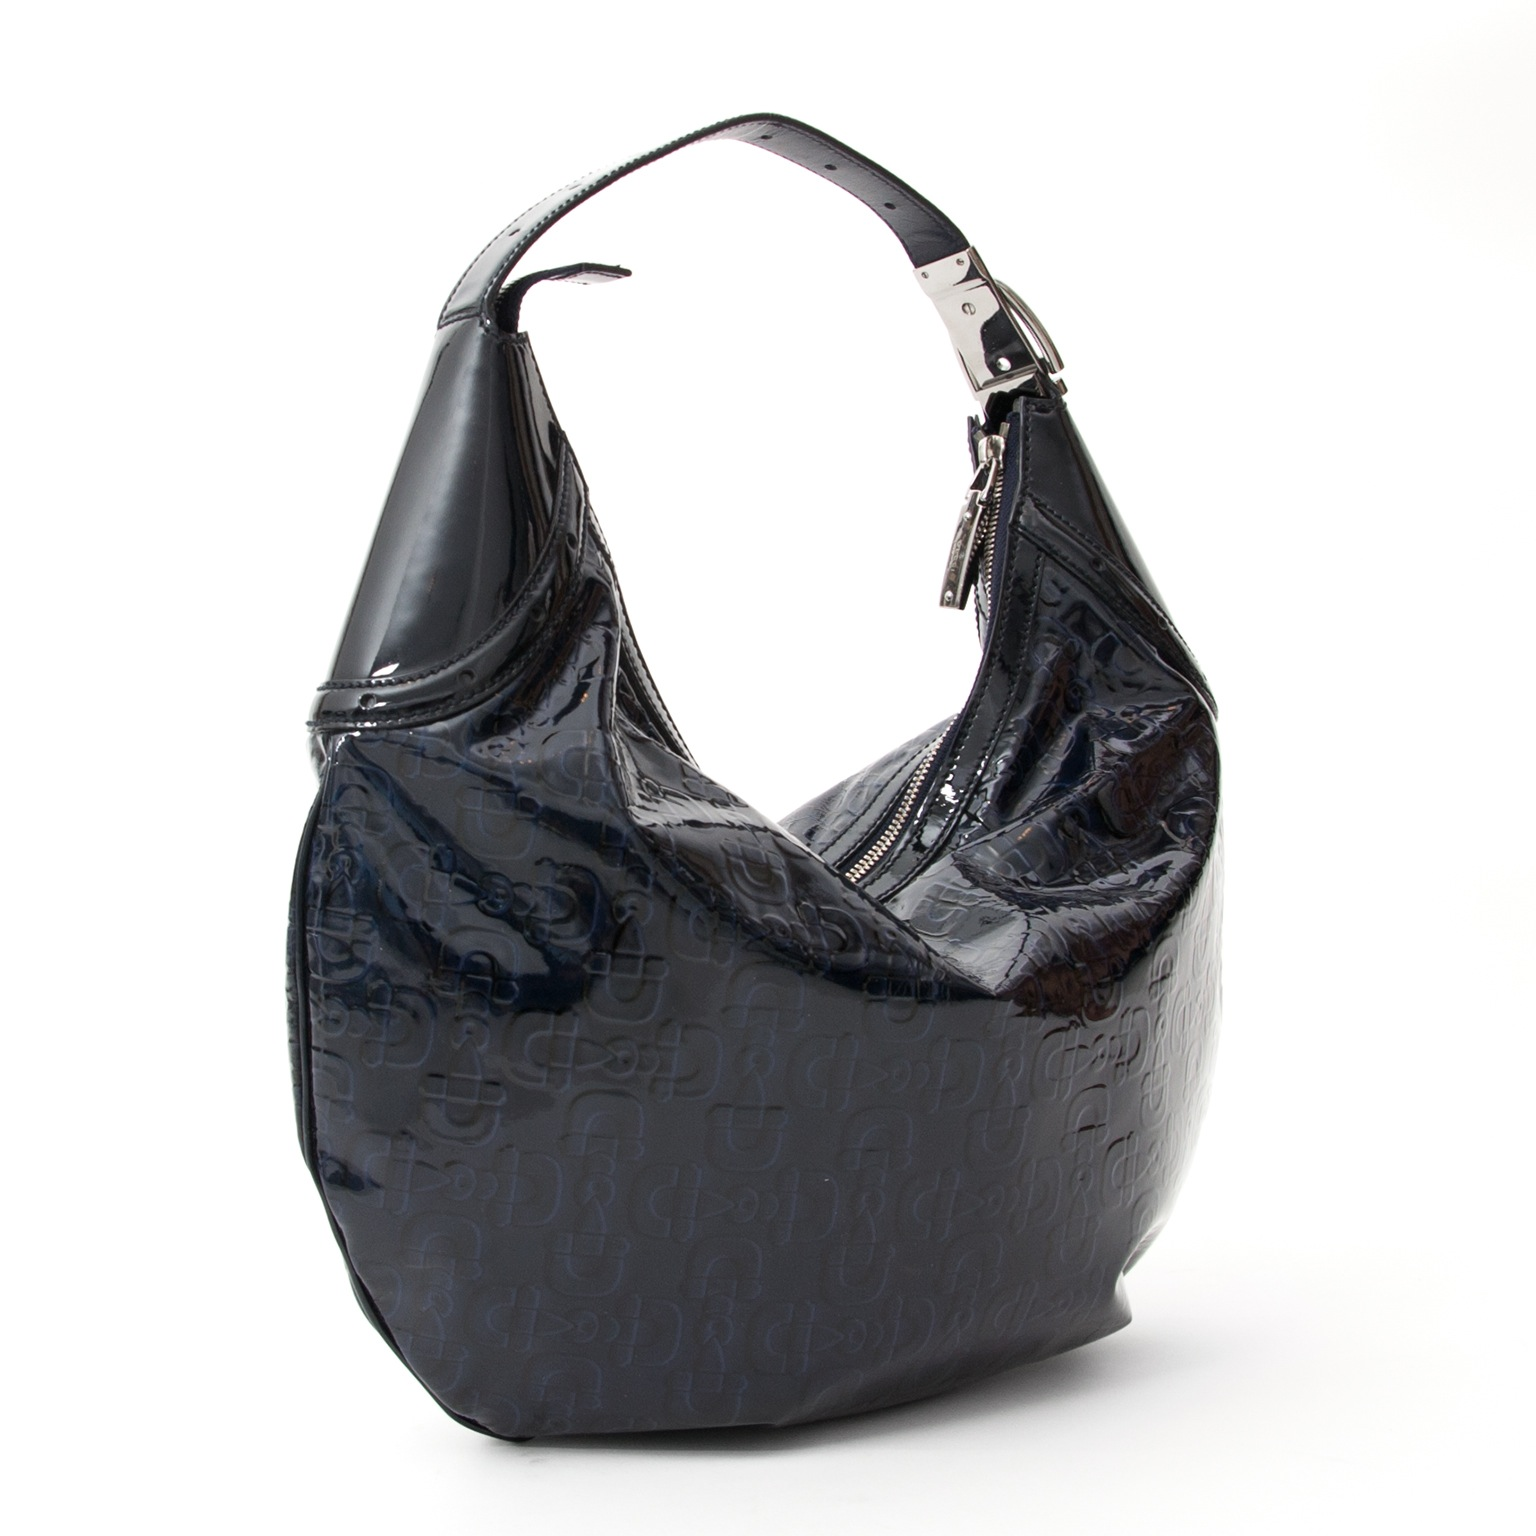 Gucci Navy Horsebit Embossed Patent Leather Glam Hobo Handbag, Labellov offers a wide selection of new and preloved luxury handbag. Visit the platform for a safe and secure shopping experience